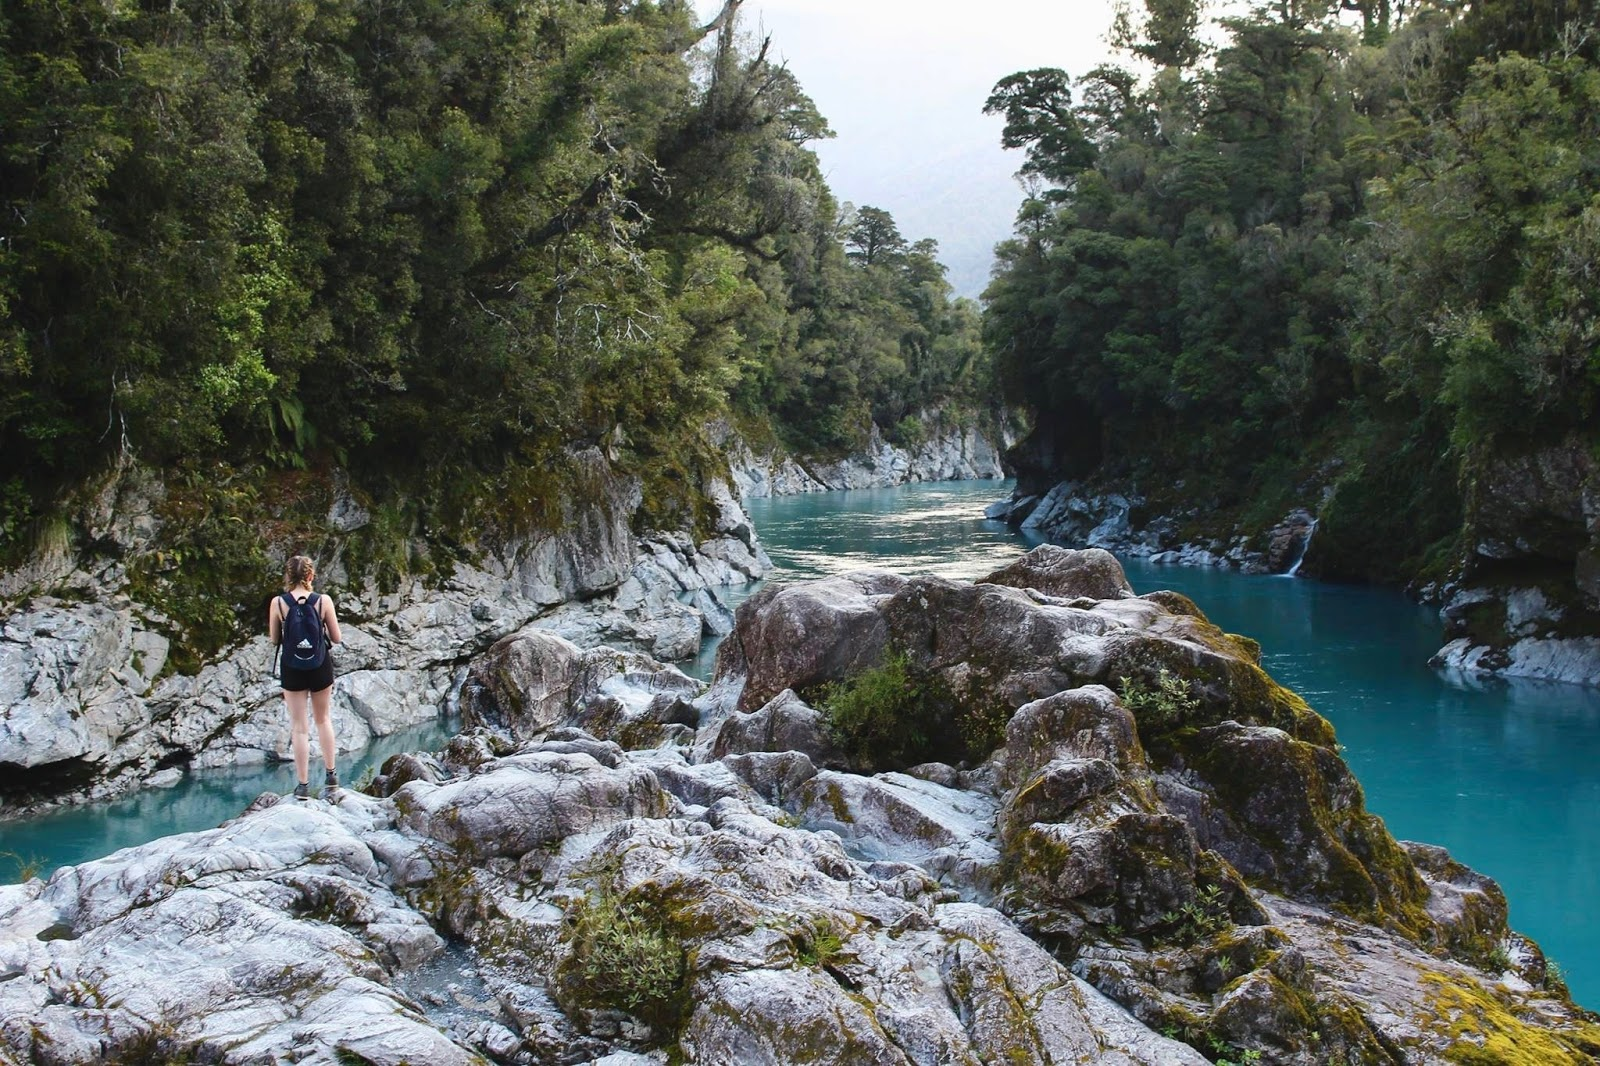 glacier blue water at Hokitika Gorge, best walks in New Zealand